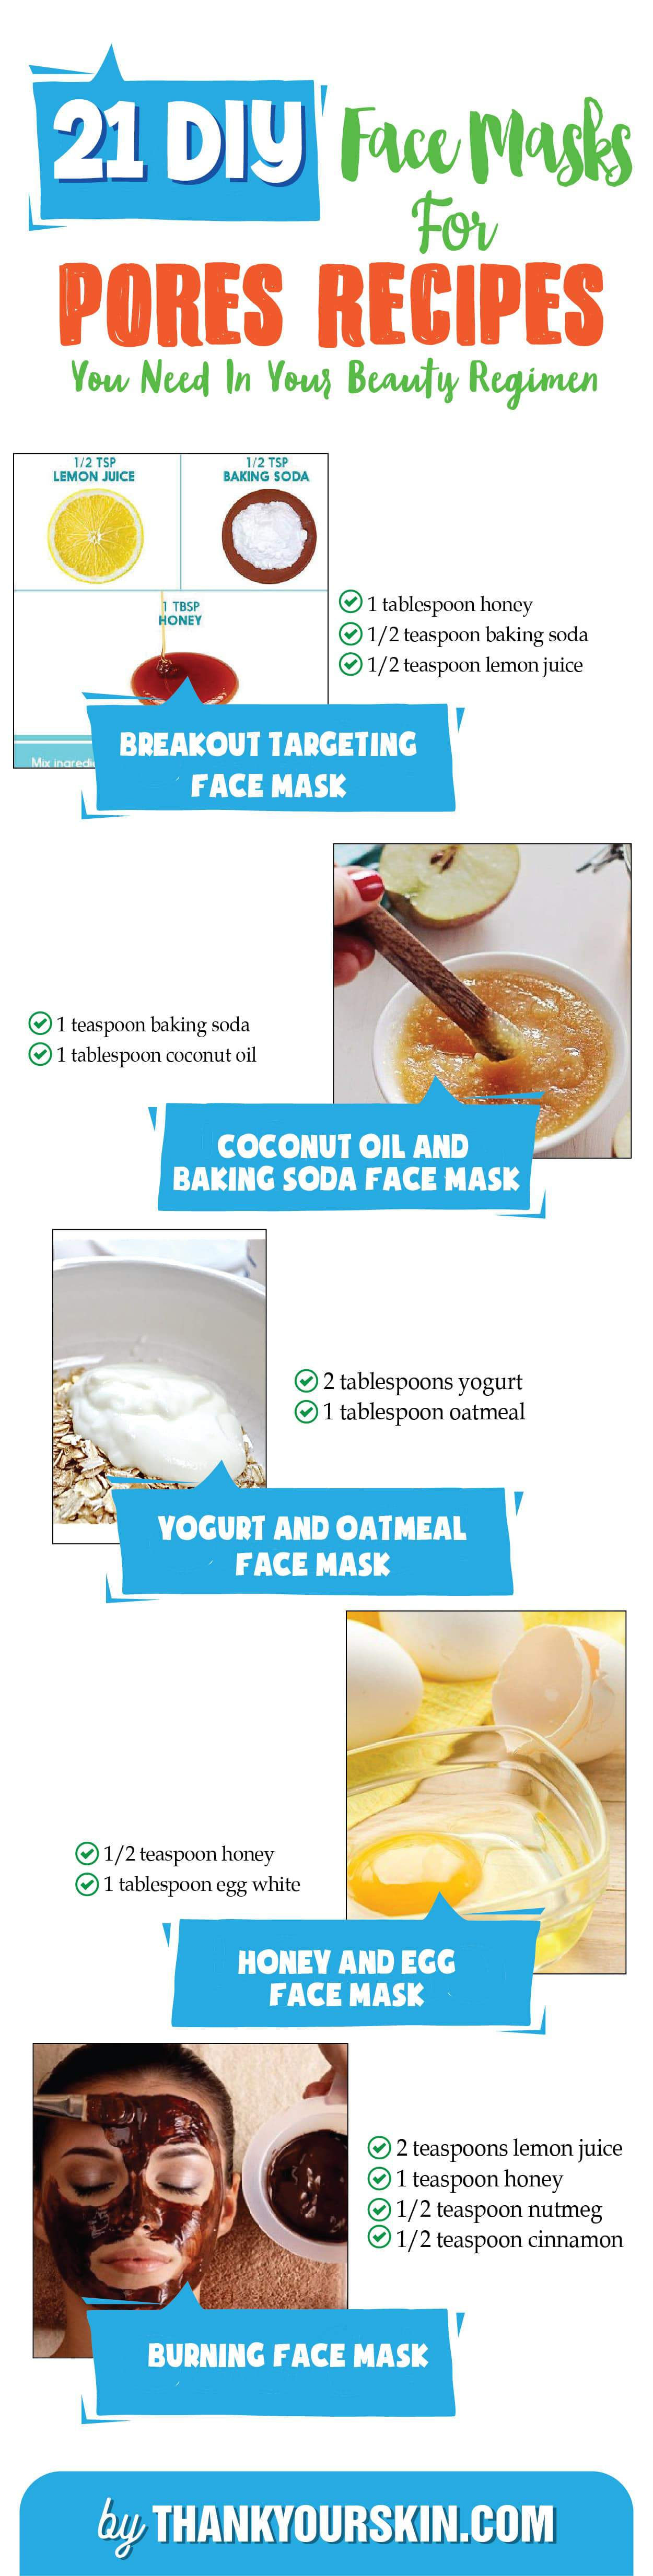 DIY Face Mask for Pores